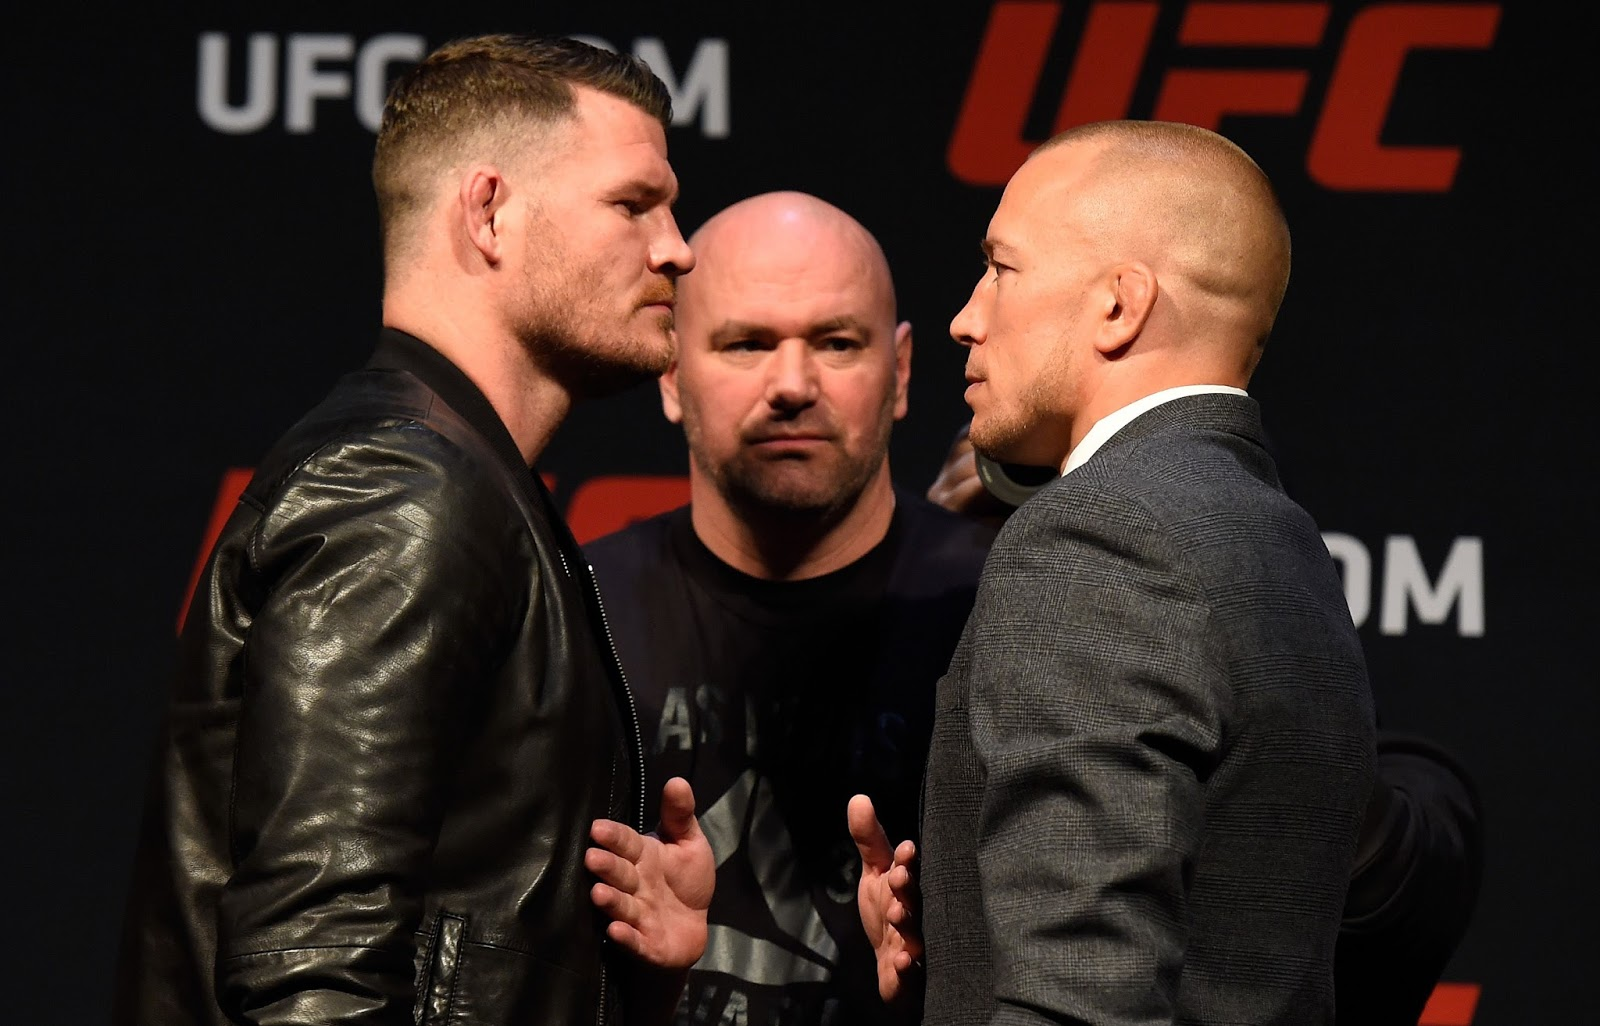 MICHAEL BISPING VS. GEORGES ST PIERRE 4